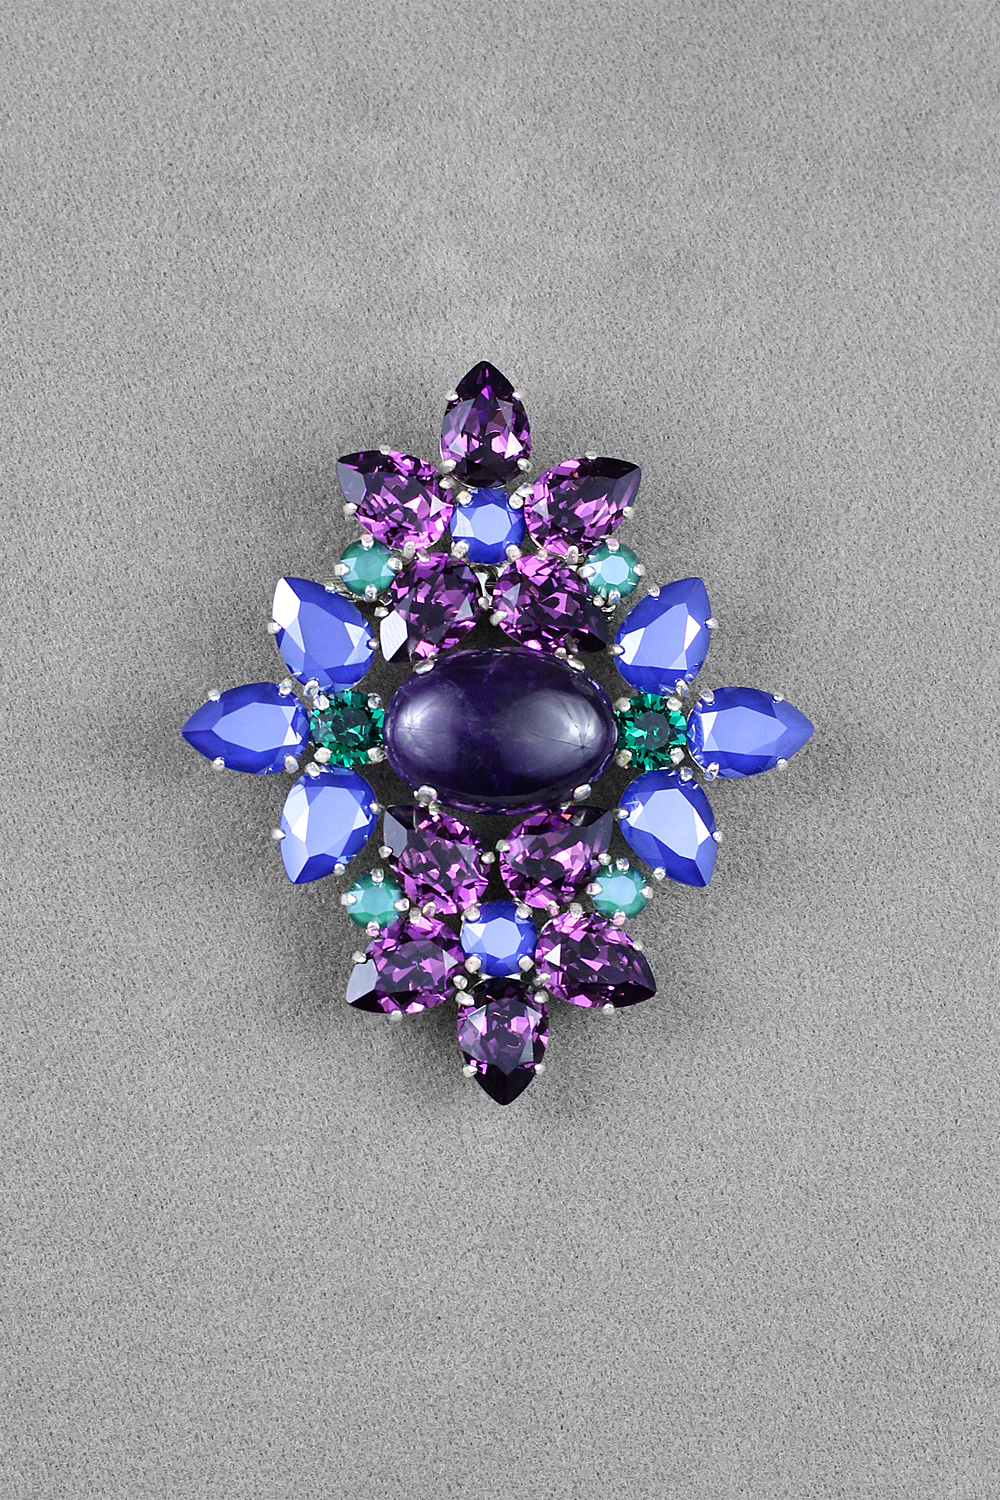 bloom pandora jewel violet hut brooch glorious pendant the